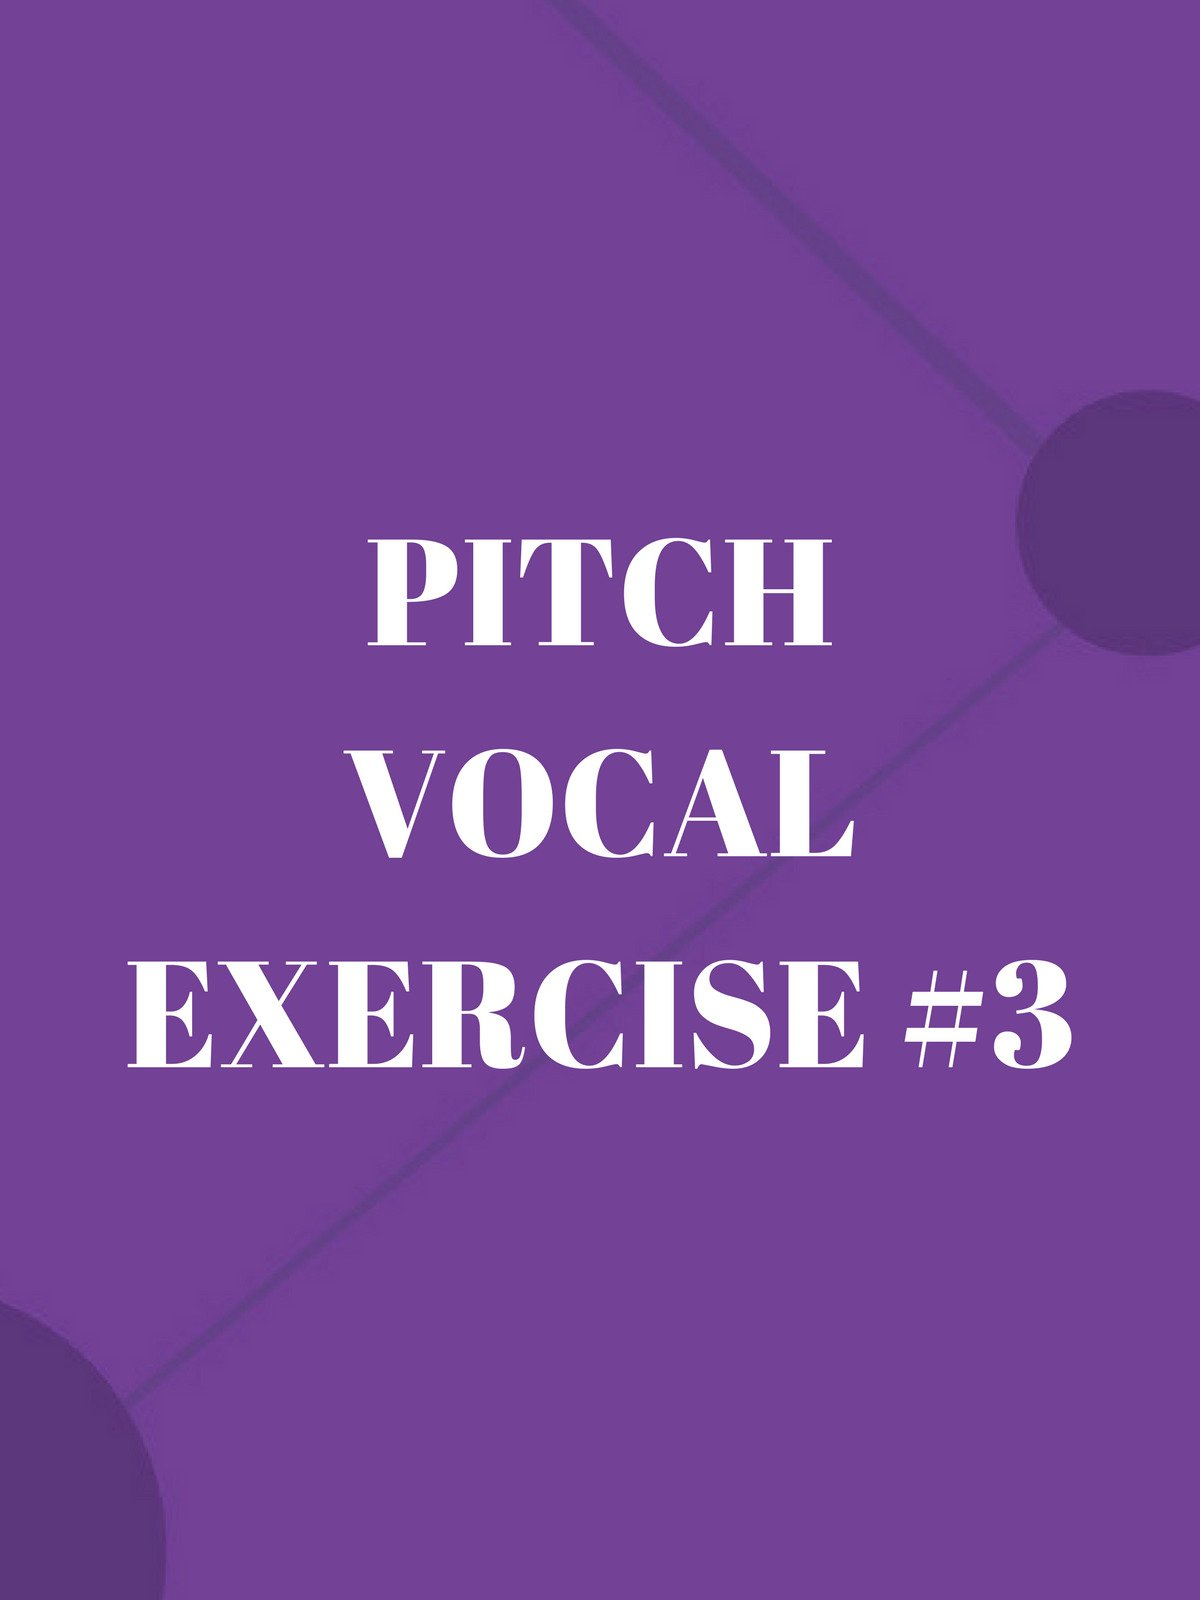 Pitch Vocal Exercise #3